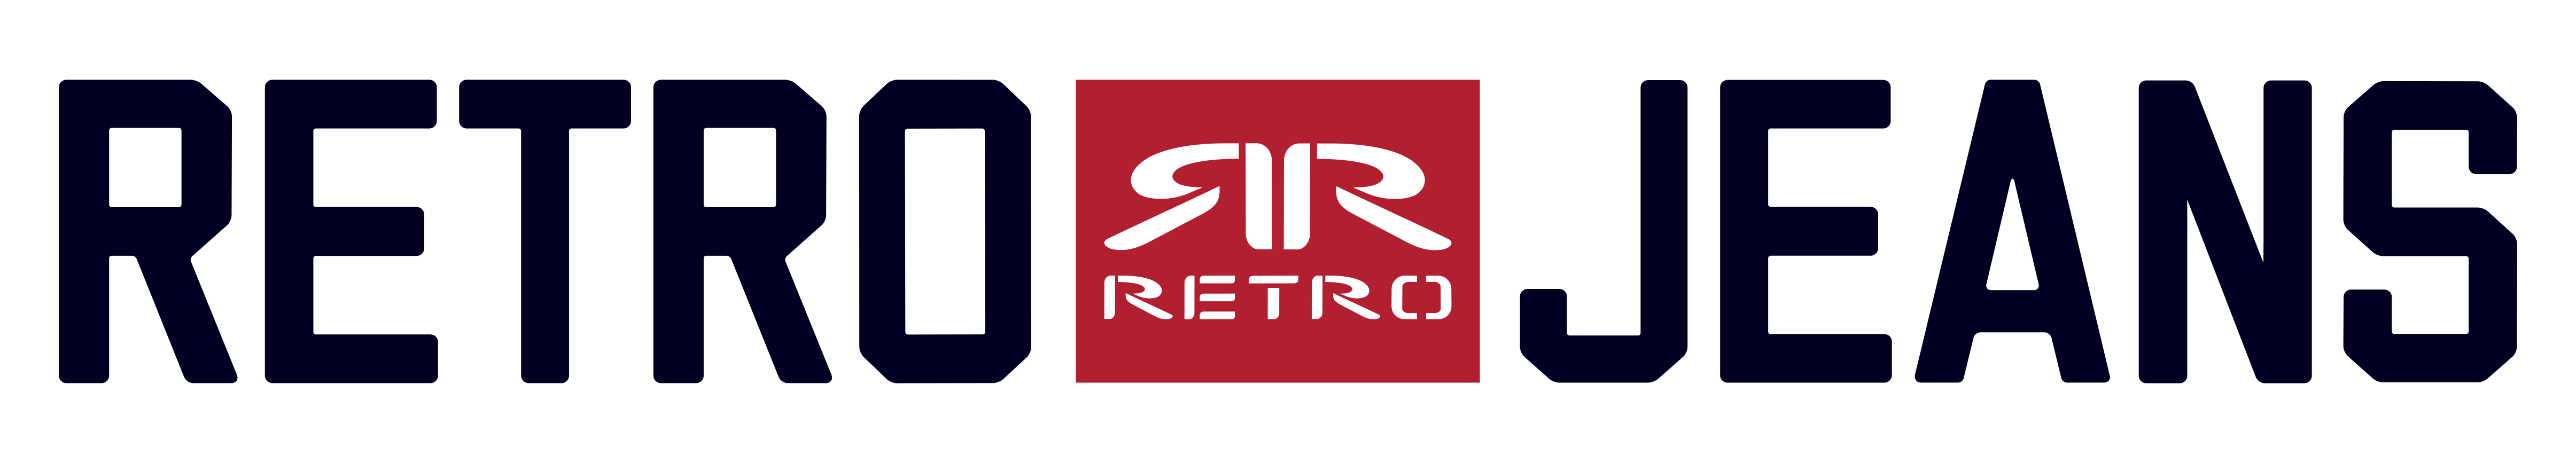 OFFICIAL_RETRO_JEANS_LOGO_2018FW-2.png